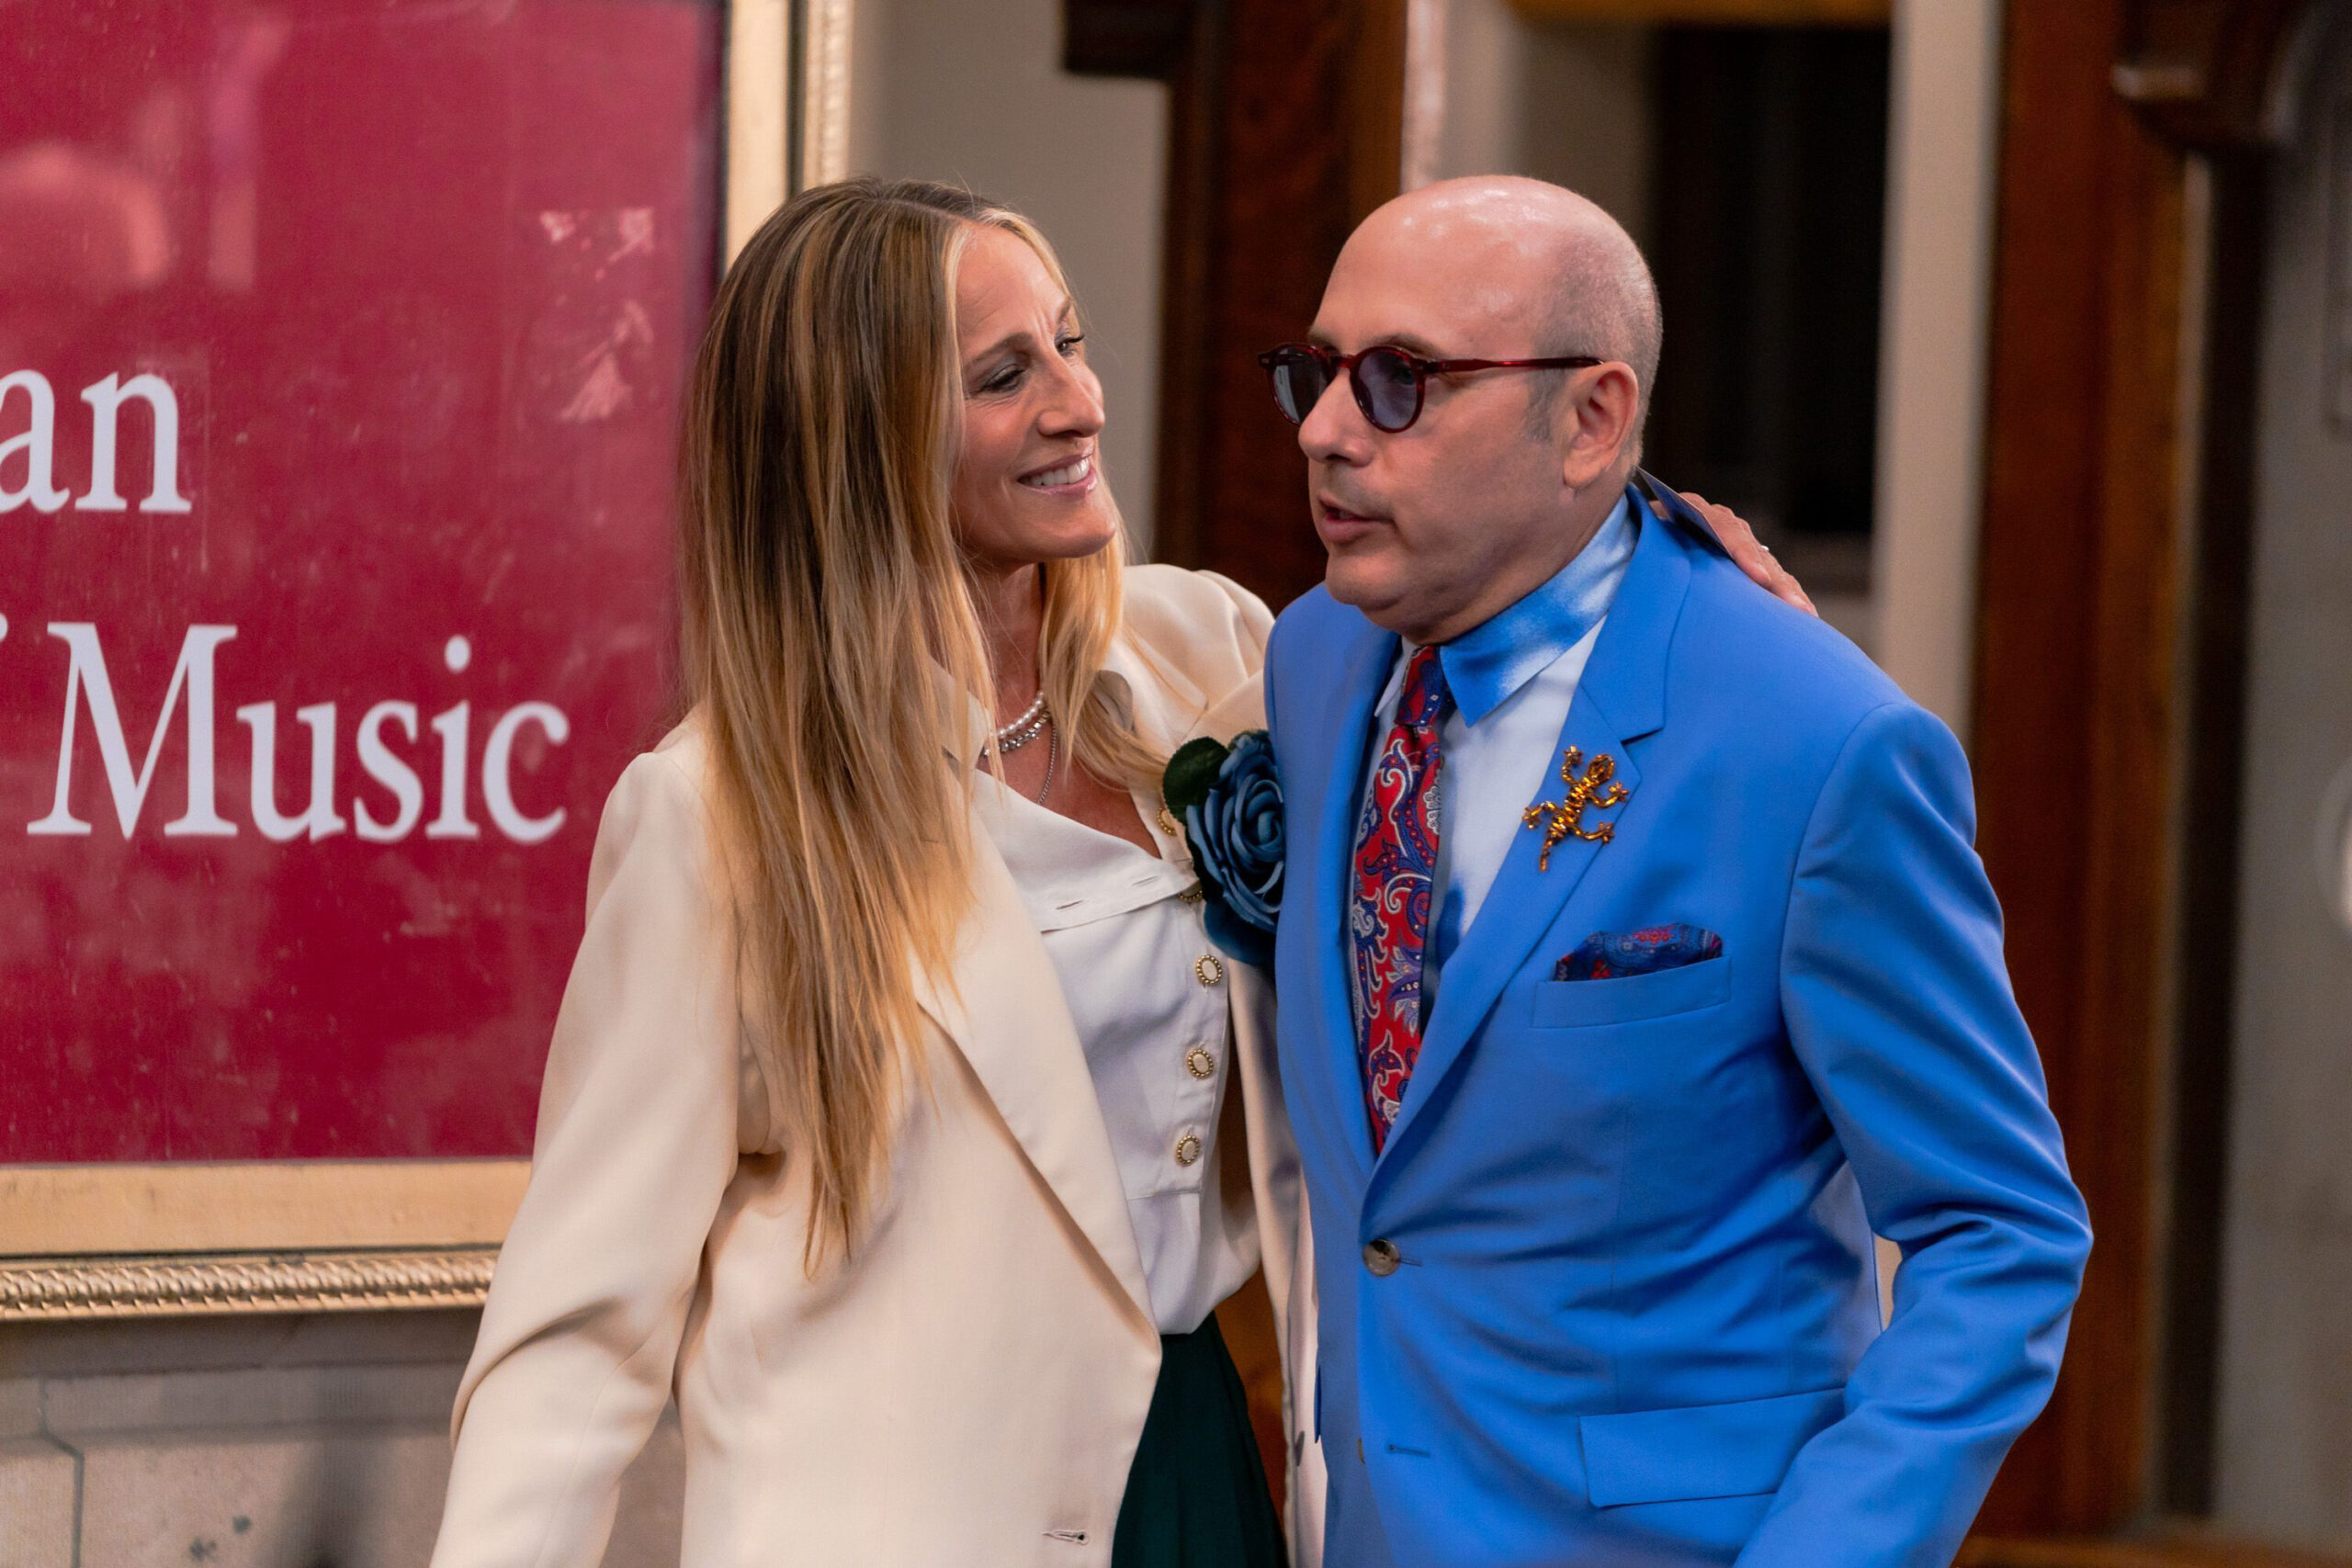 <i>Gotham/GC Images/Getty Images</i><br/>Sarah Jessica Parker and Willie Garson are seen filming